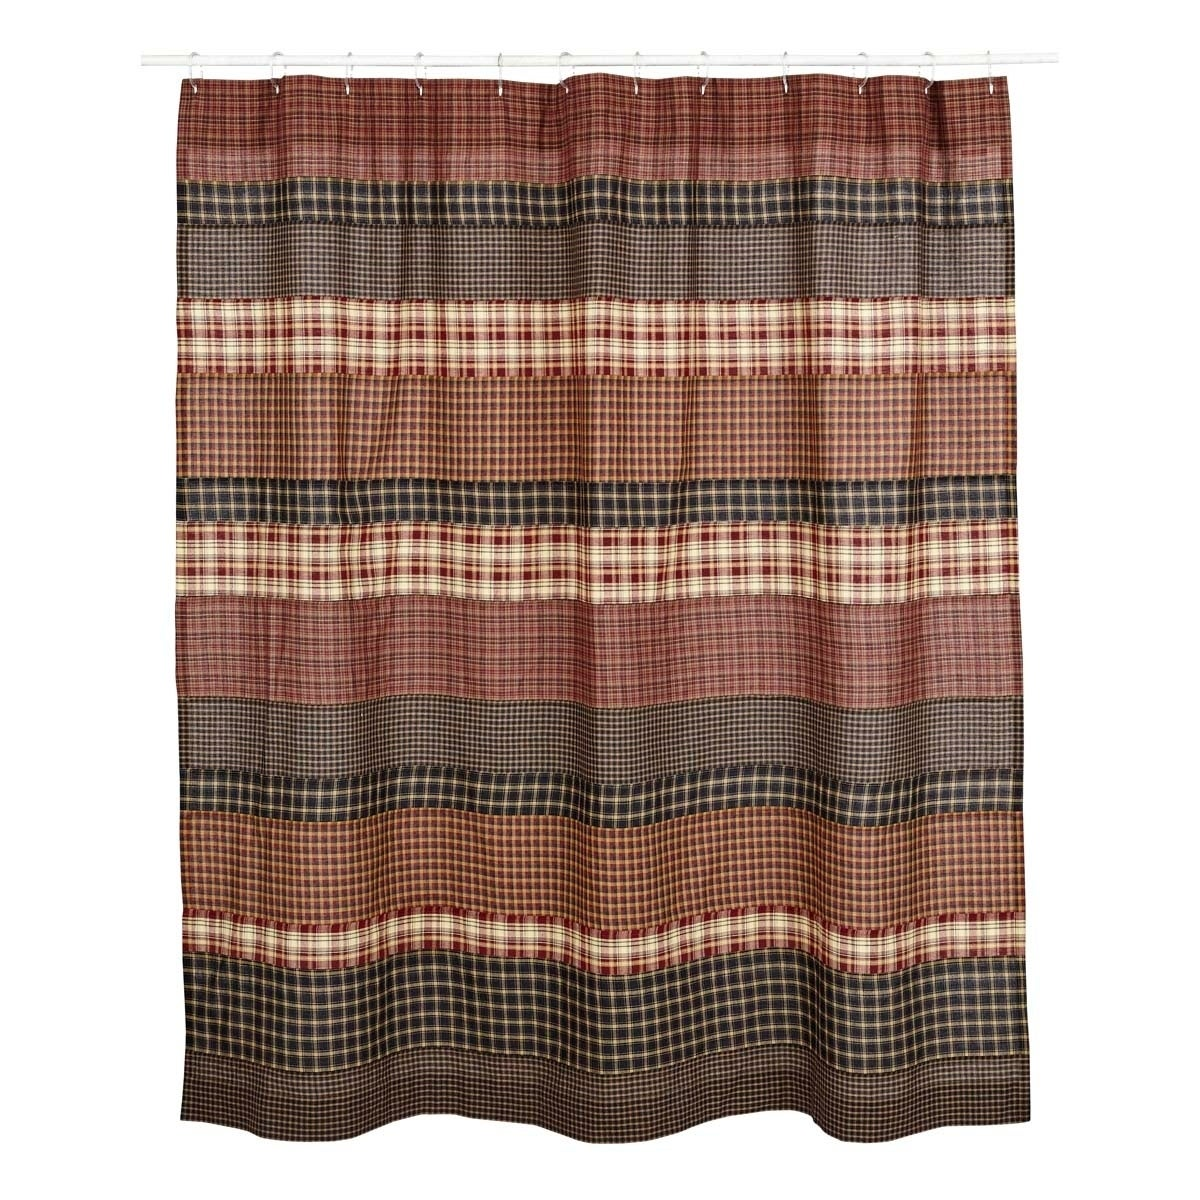 Red Rustic Bath V H C Beckham Shower Curtain Rod Pocket Cotton Striped Black Brown - Diamond Home USA